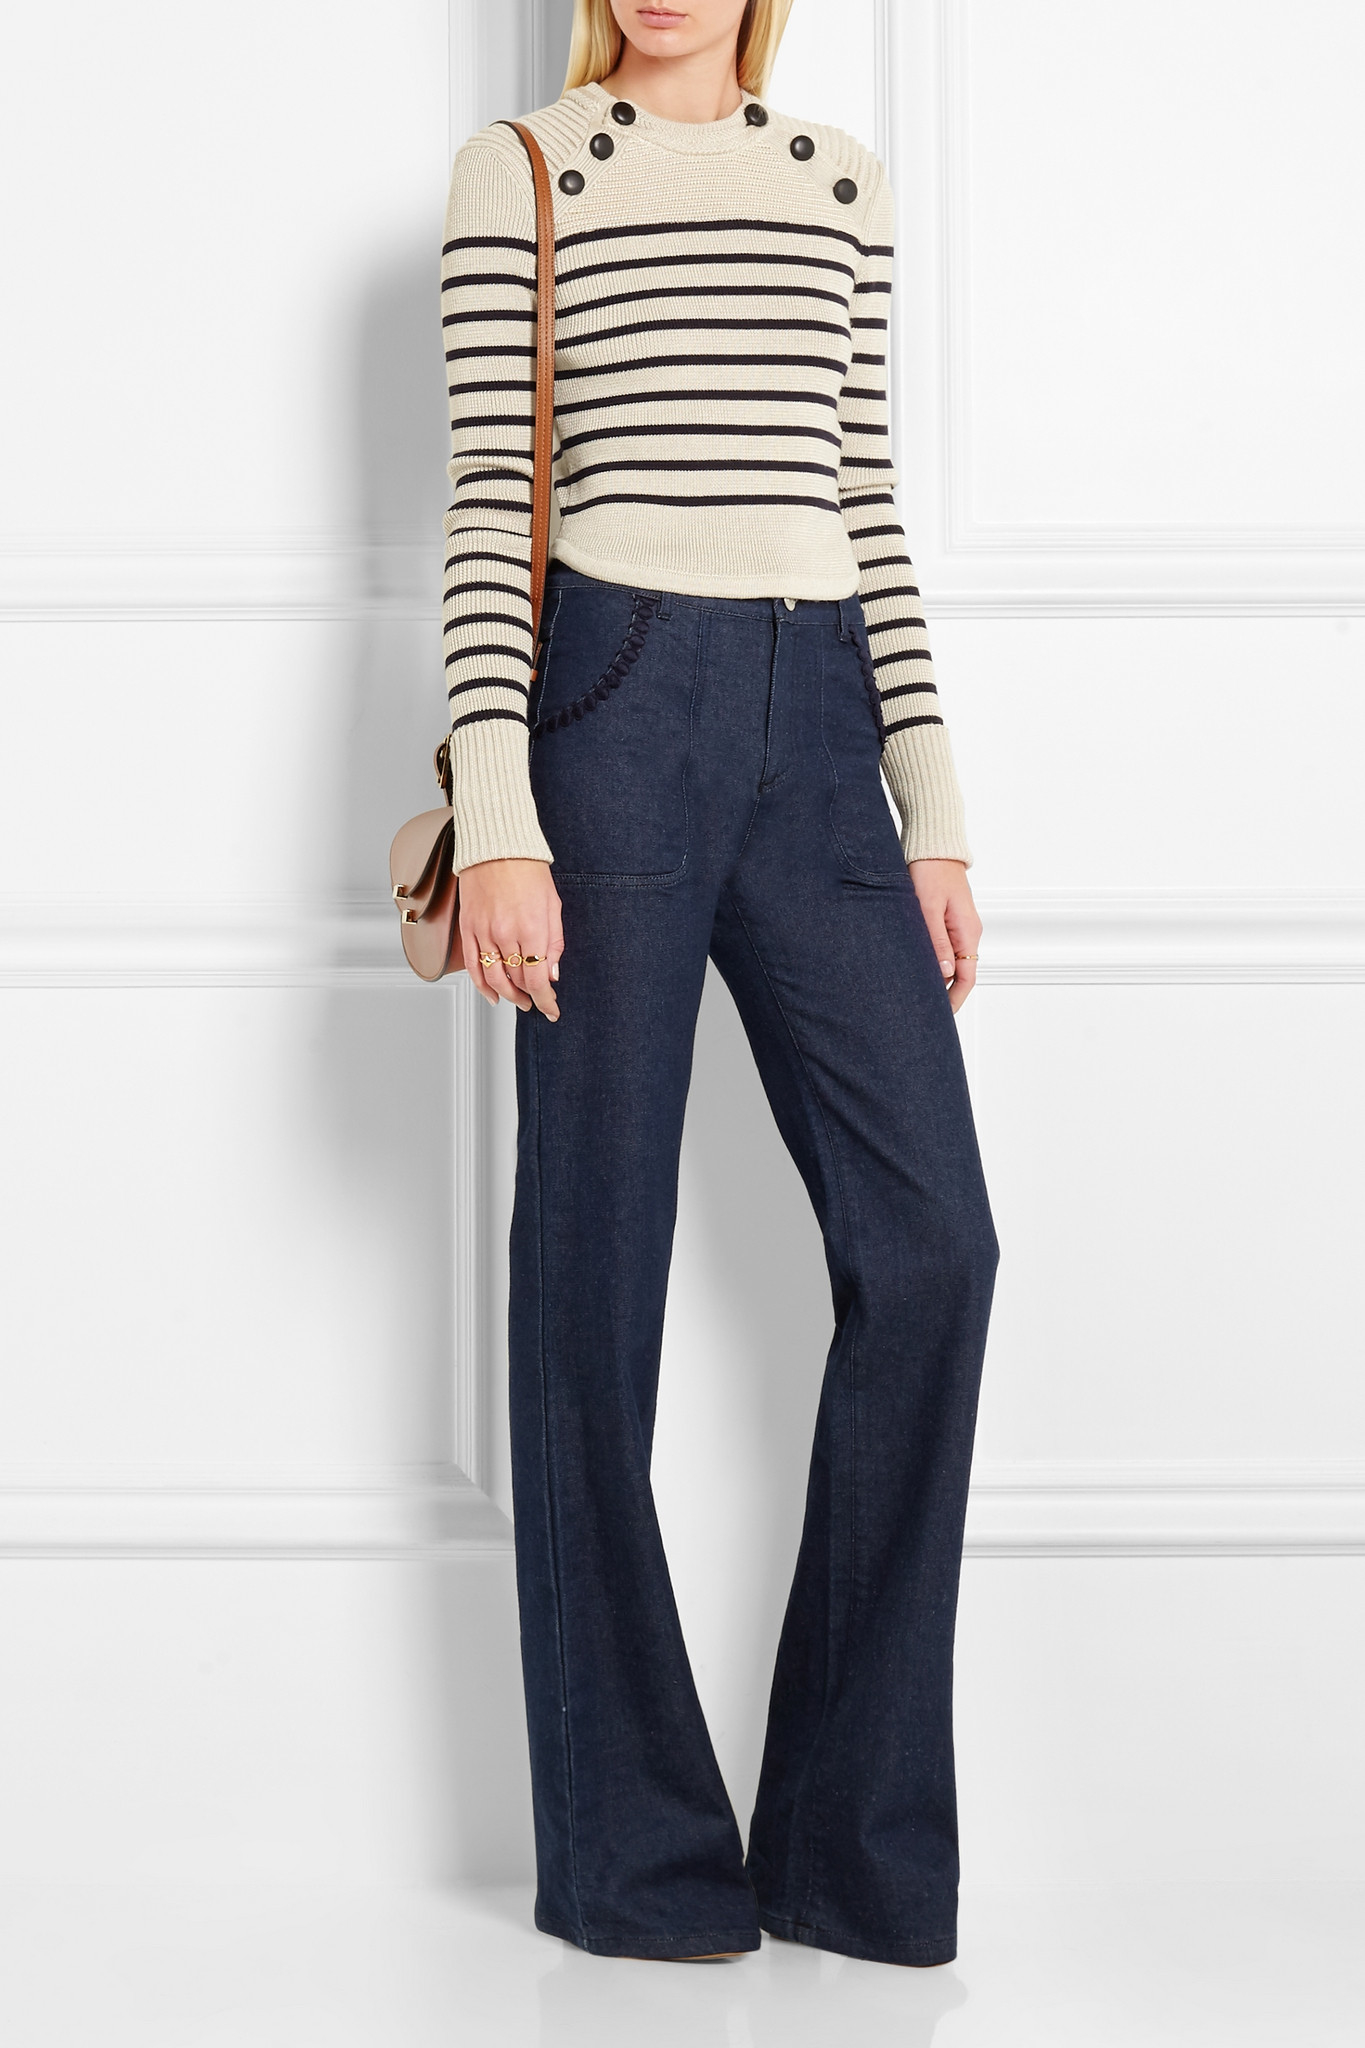 high-rise flared trousers - Black See By Chloé 3iKnf3t2G